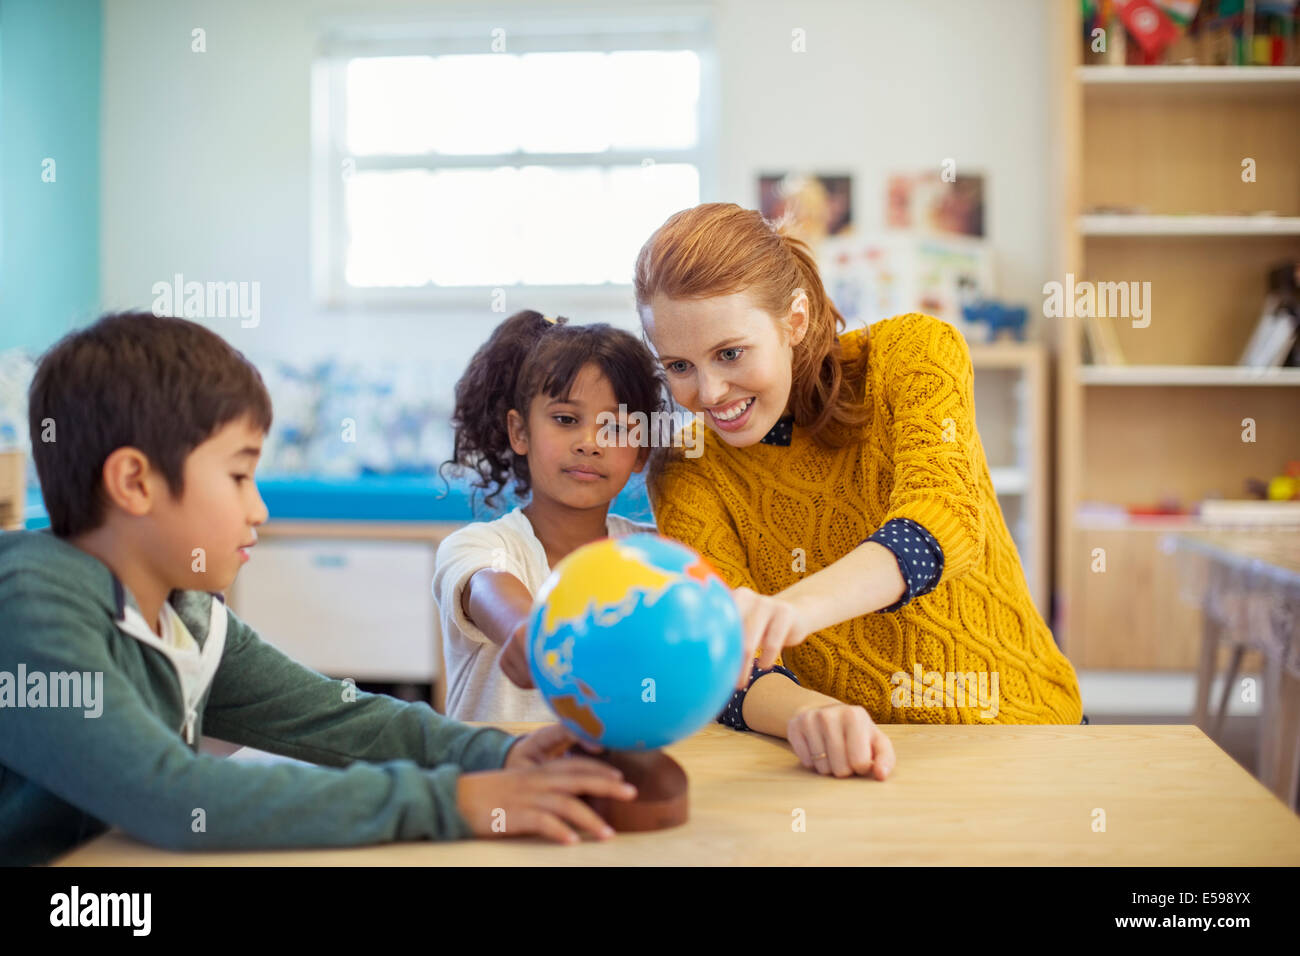 Students and teacher examining globe in classroom - Stock Image